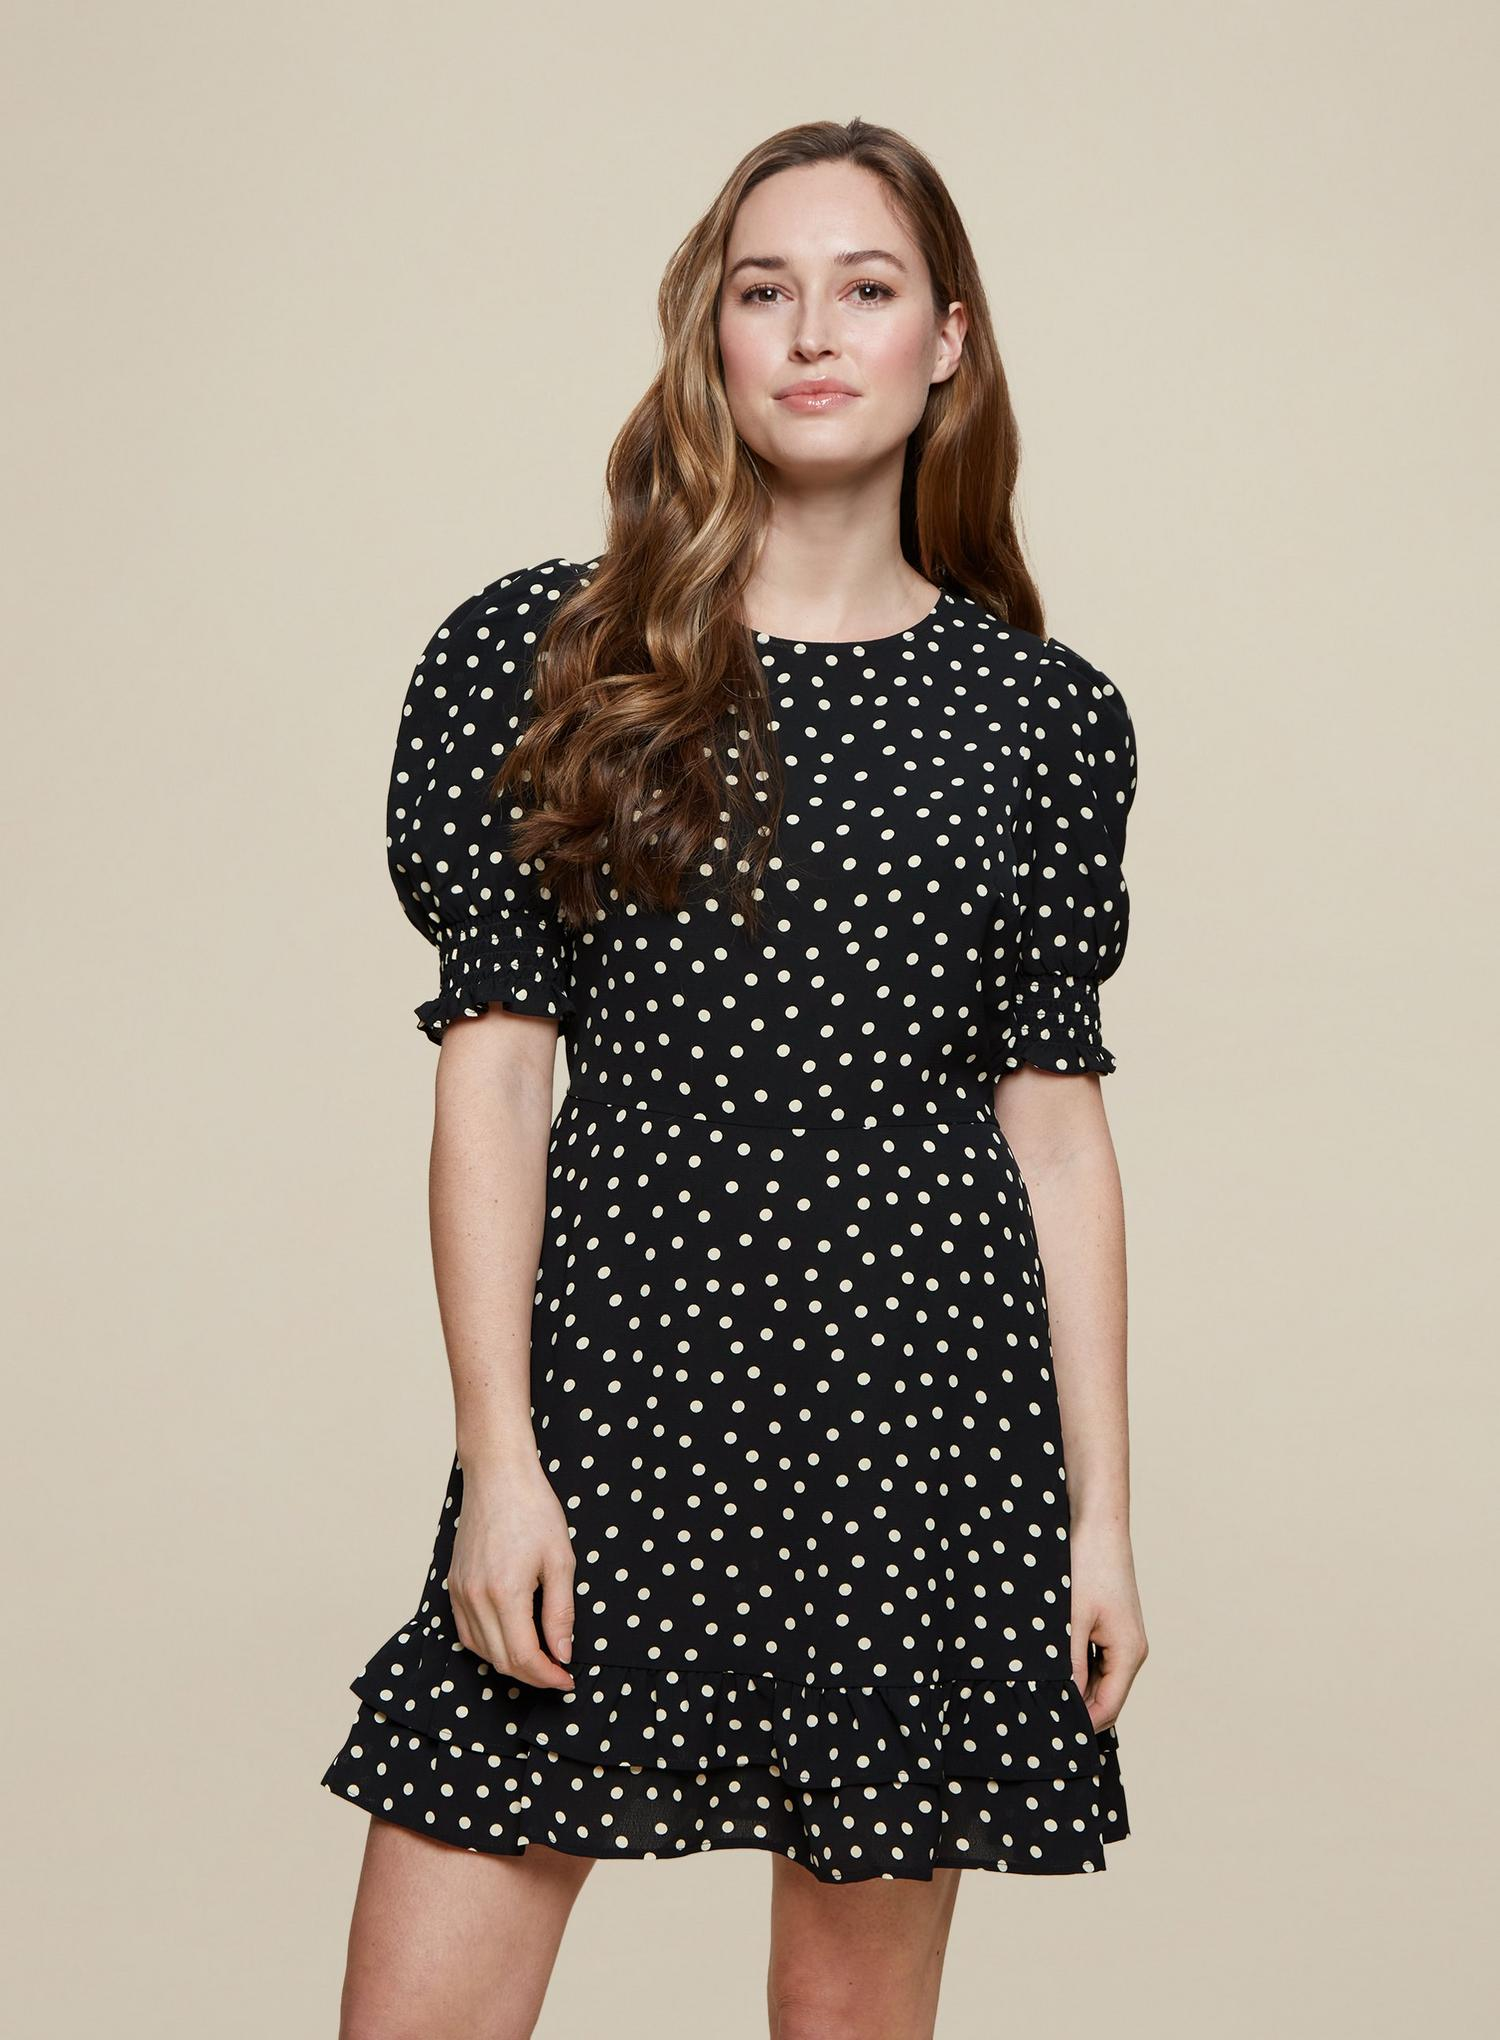 105 Black Spot Print Frill Hem Mini Dress image number 1